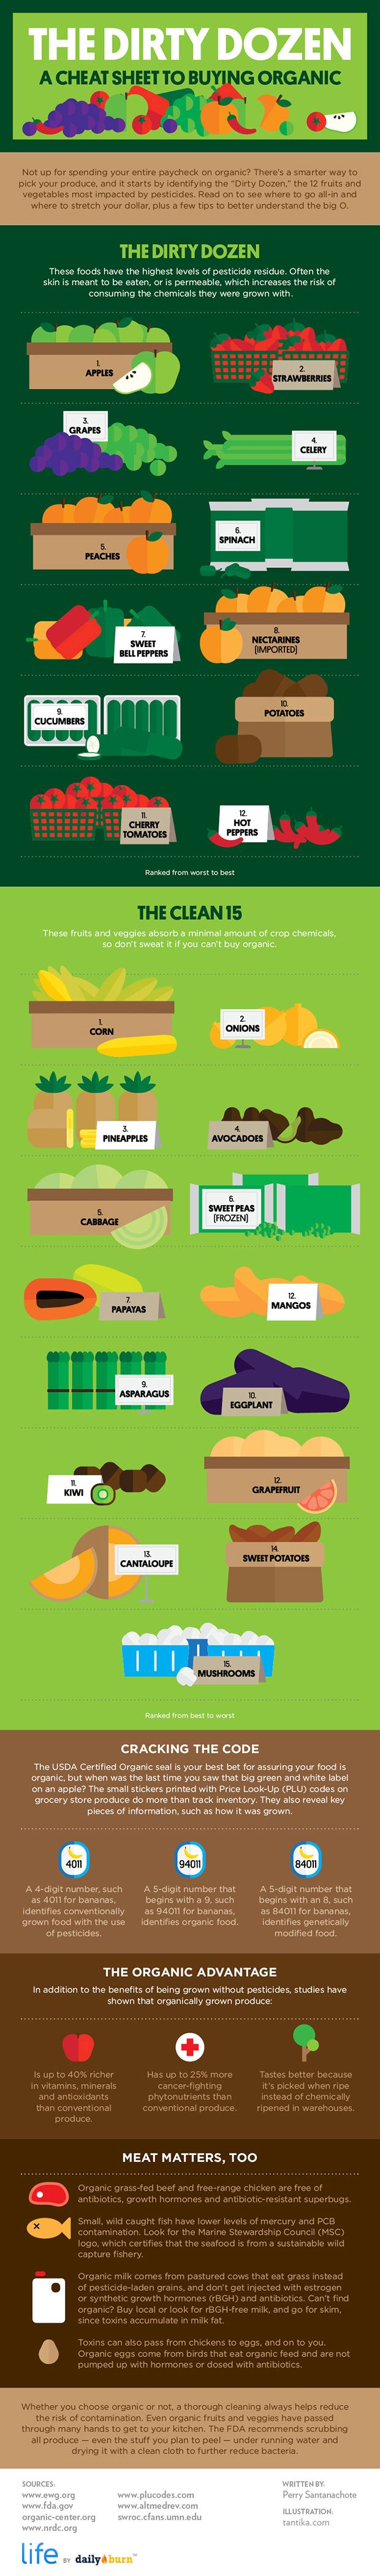 The Dirty Dozen: What to Buy Organic [INFOGRAPHIC] by the DailyBurn